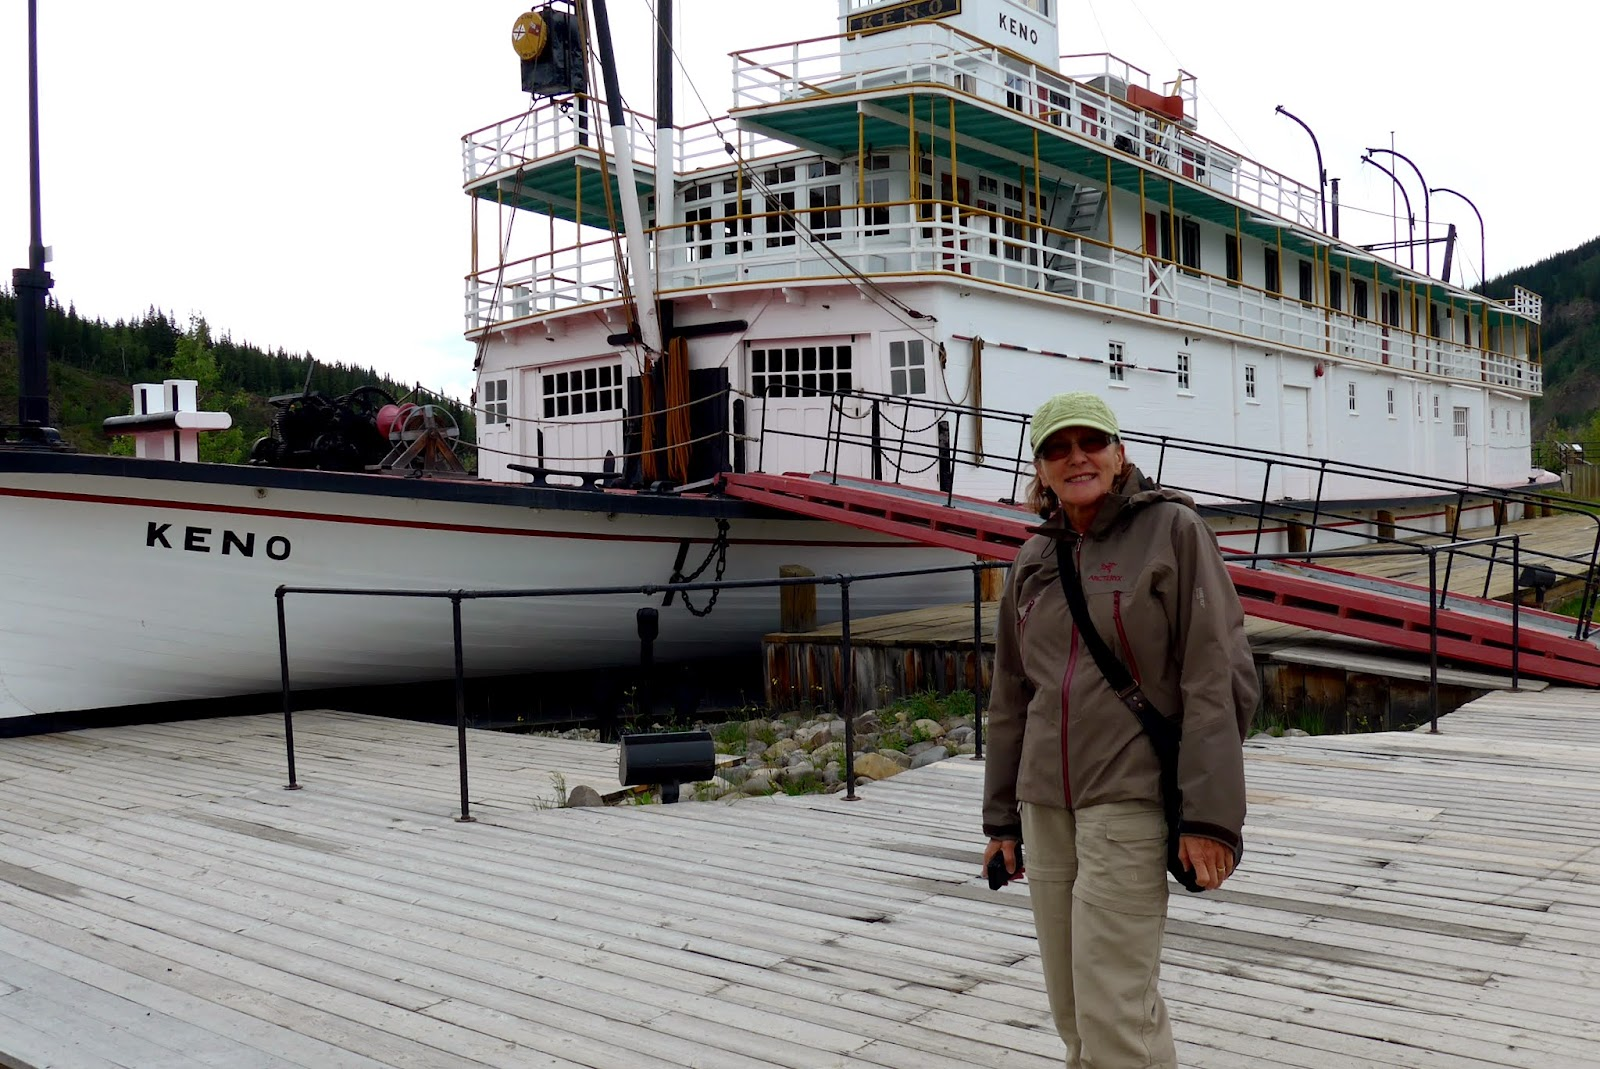 Liz in front of the SS Keno. A Canadian National Historic Site.